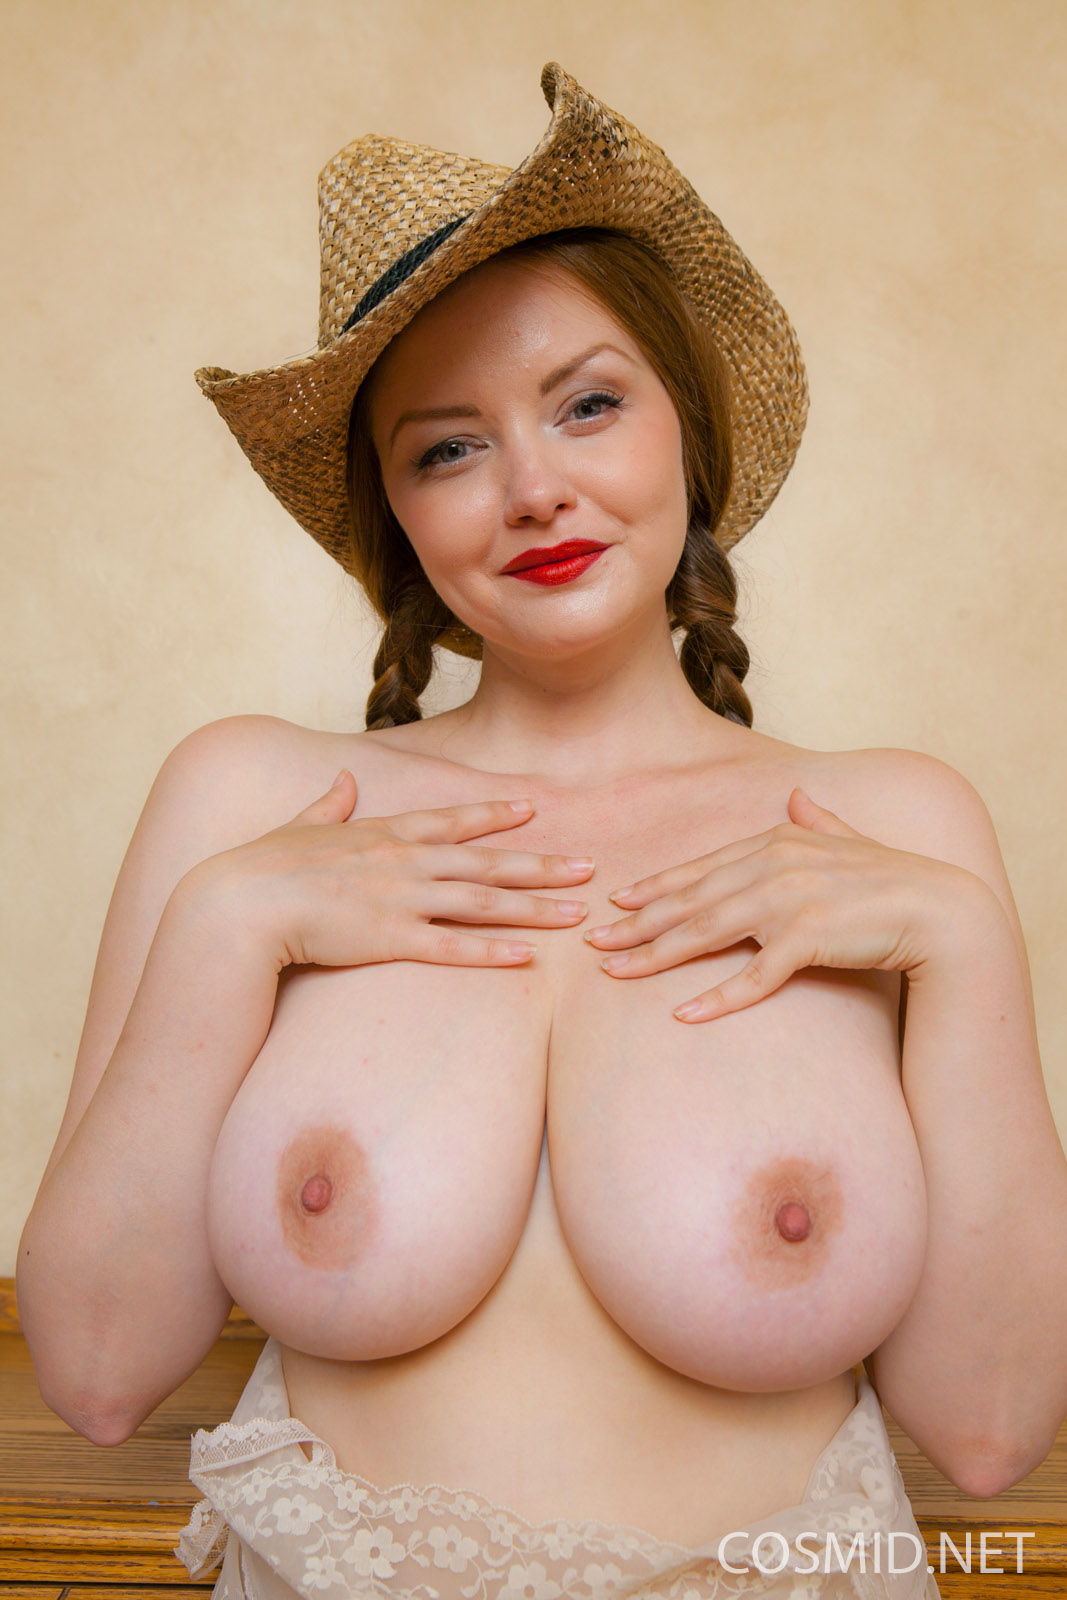 Candid busty braless girl w hard nipples and boobs swaying - 2 7